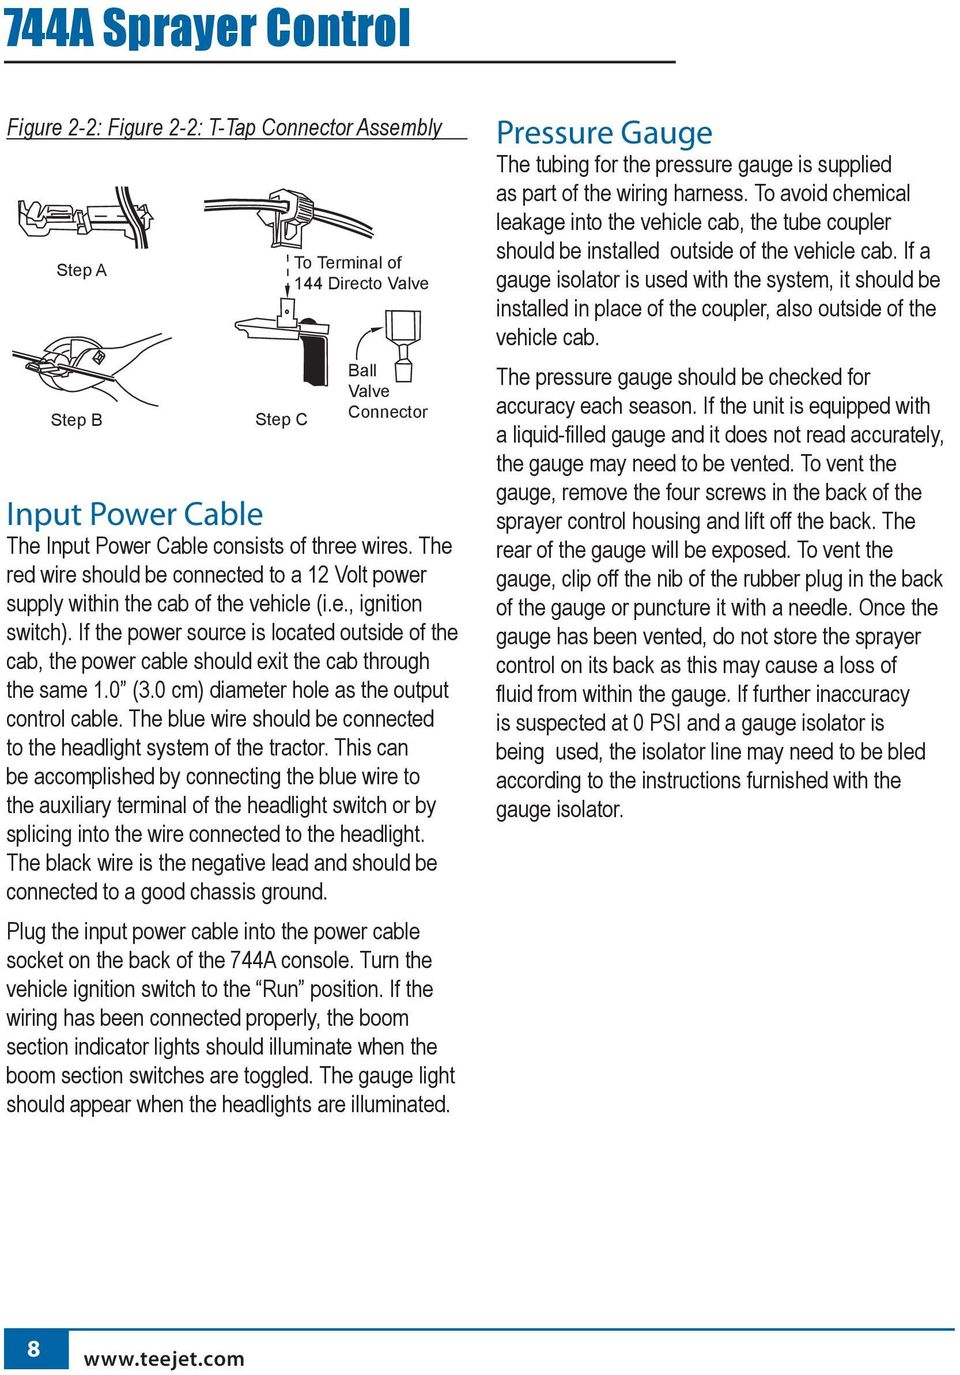 If the power source is located outside of the cab, the power cable should exit the cab through the same 1.0 (3.0 cm) diameter hole as the output control cable.